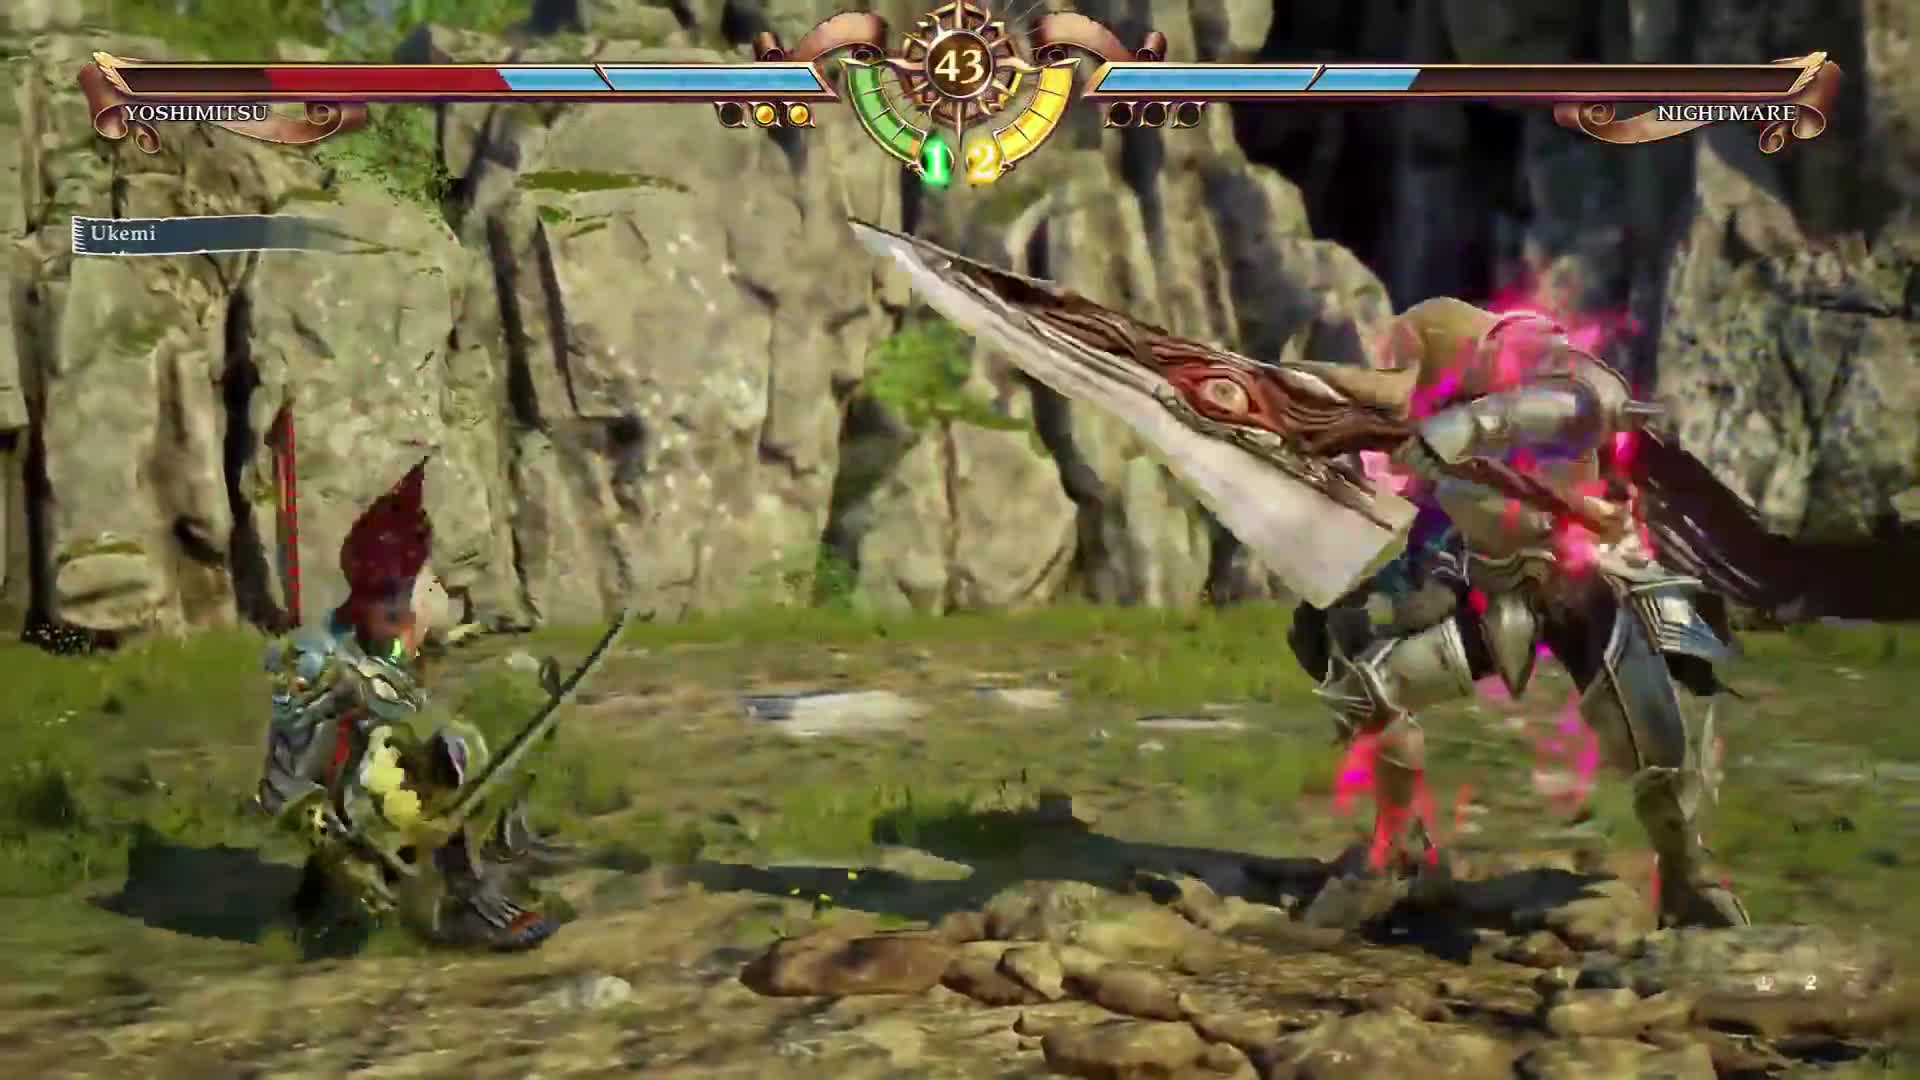 Soulcalibur 6 Gameplay Gifs Search | Search & Share on Homdor